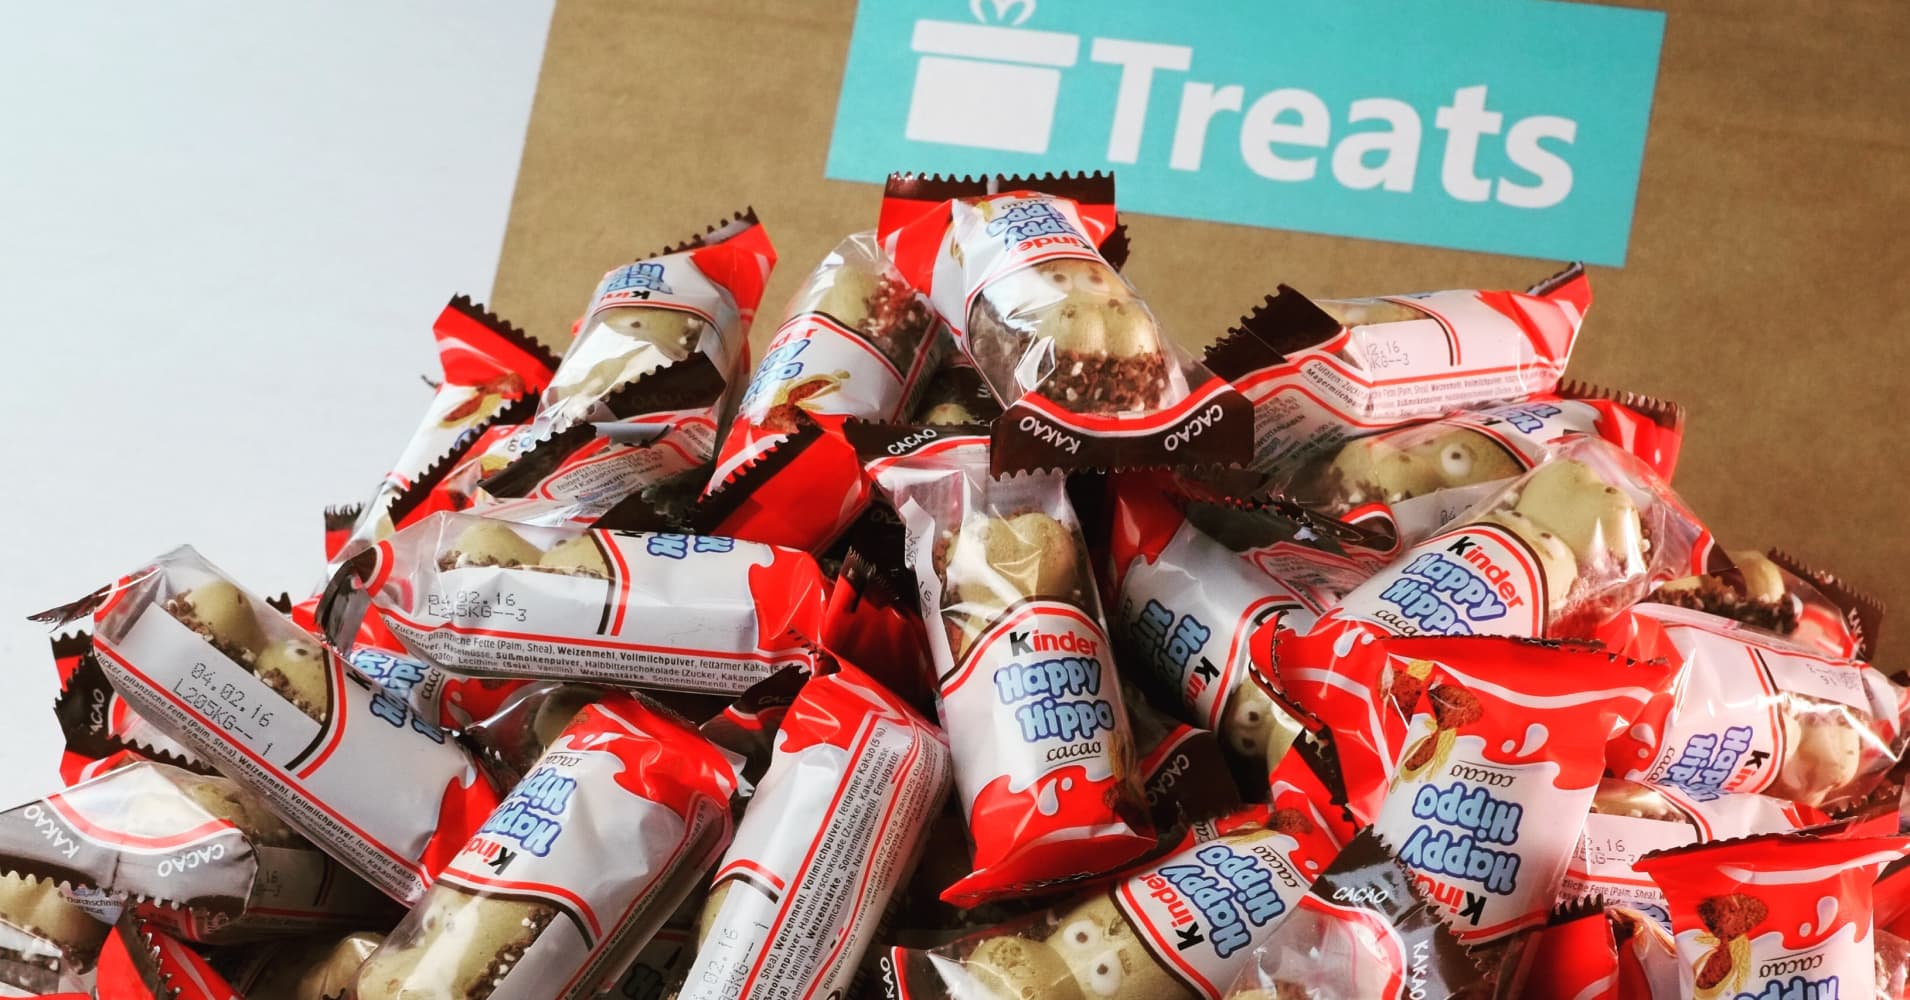 Treats Is A Subscription Service For International Snacks